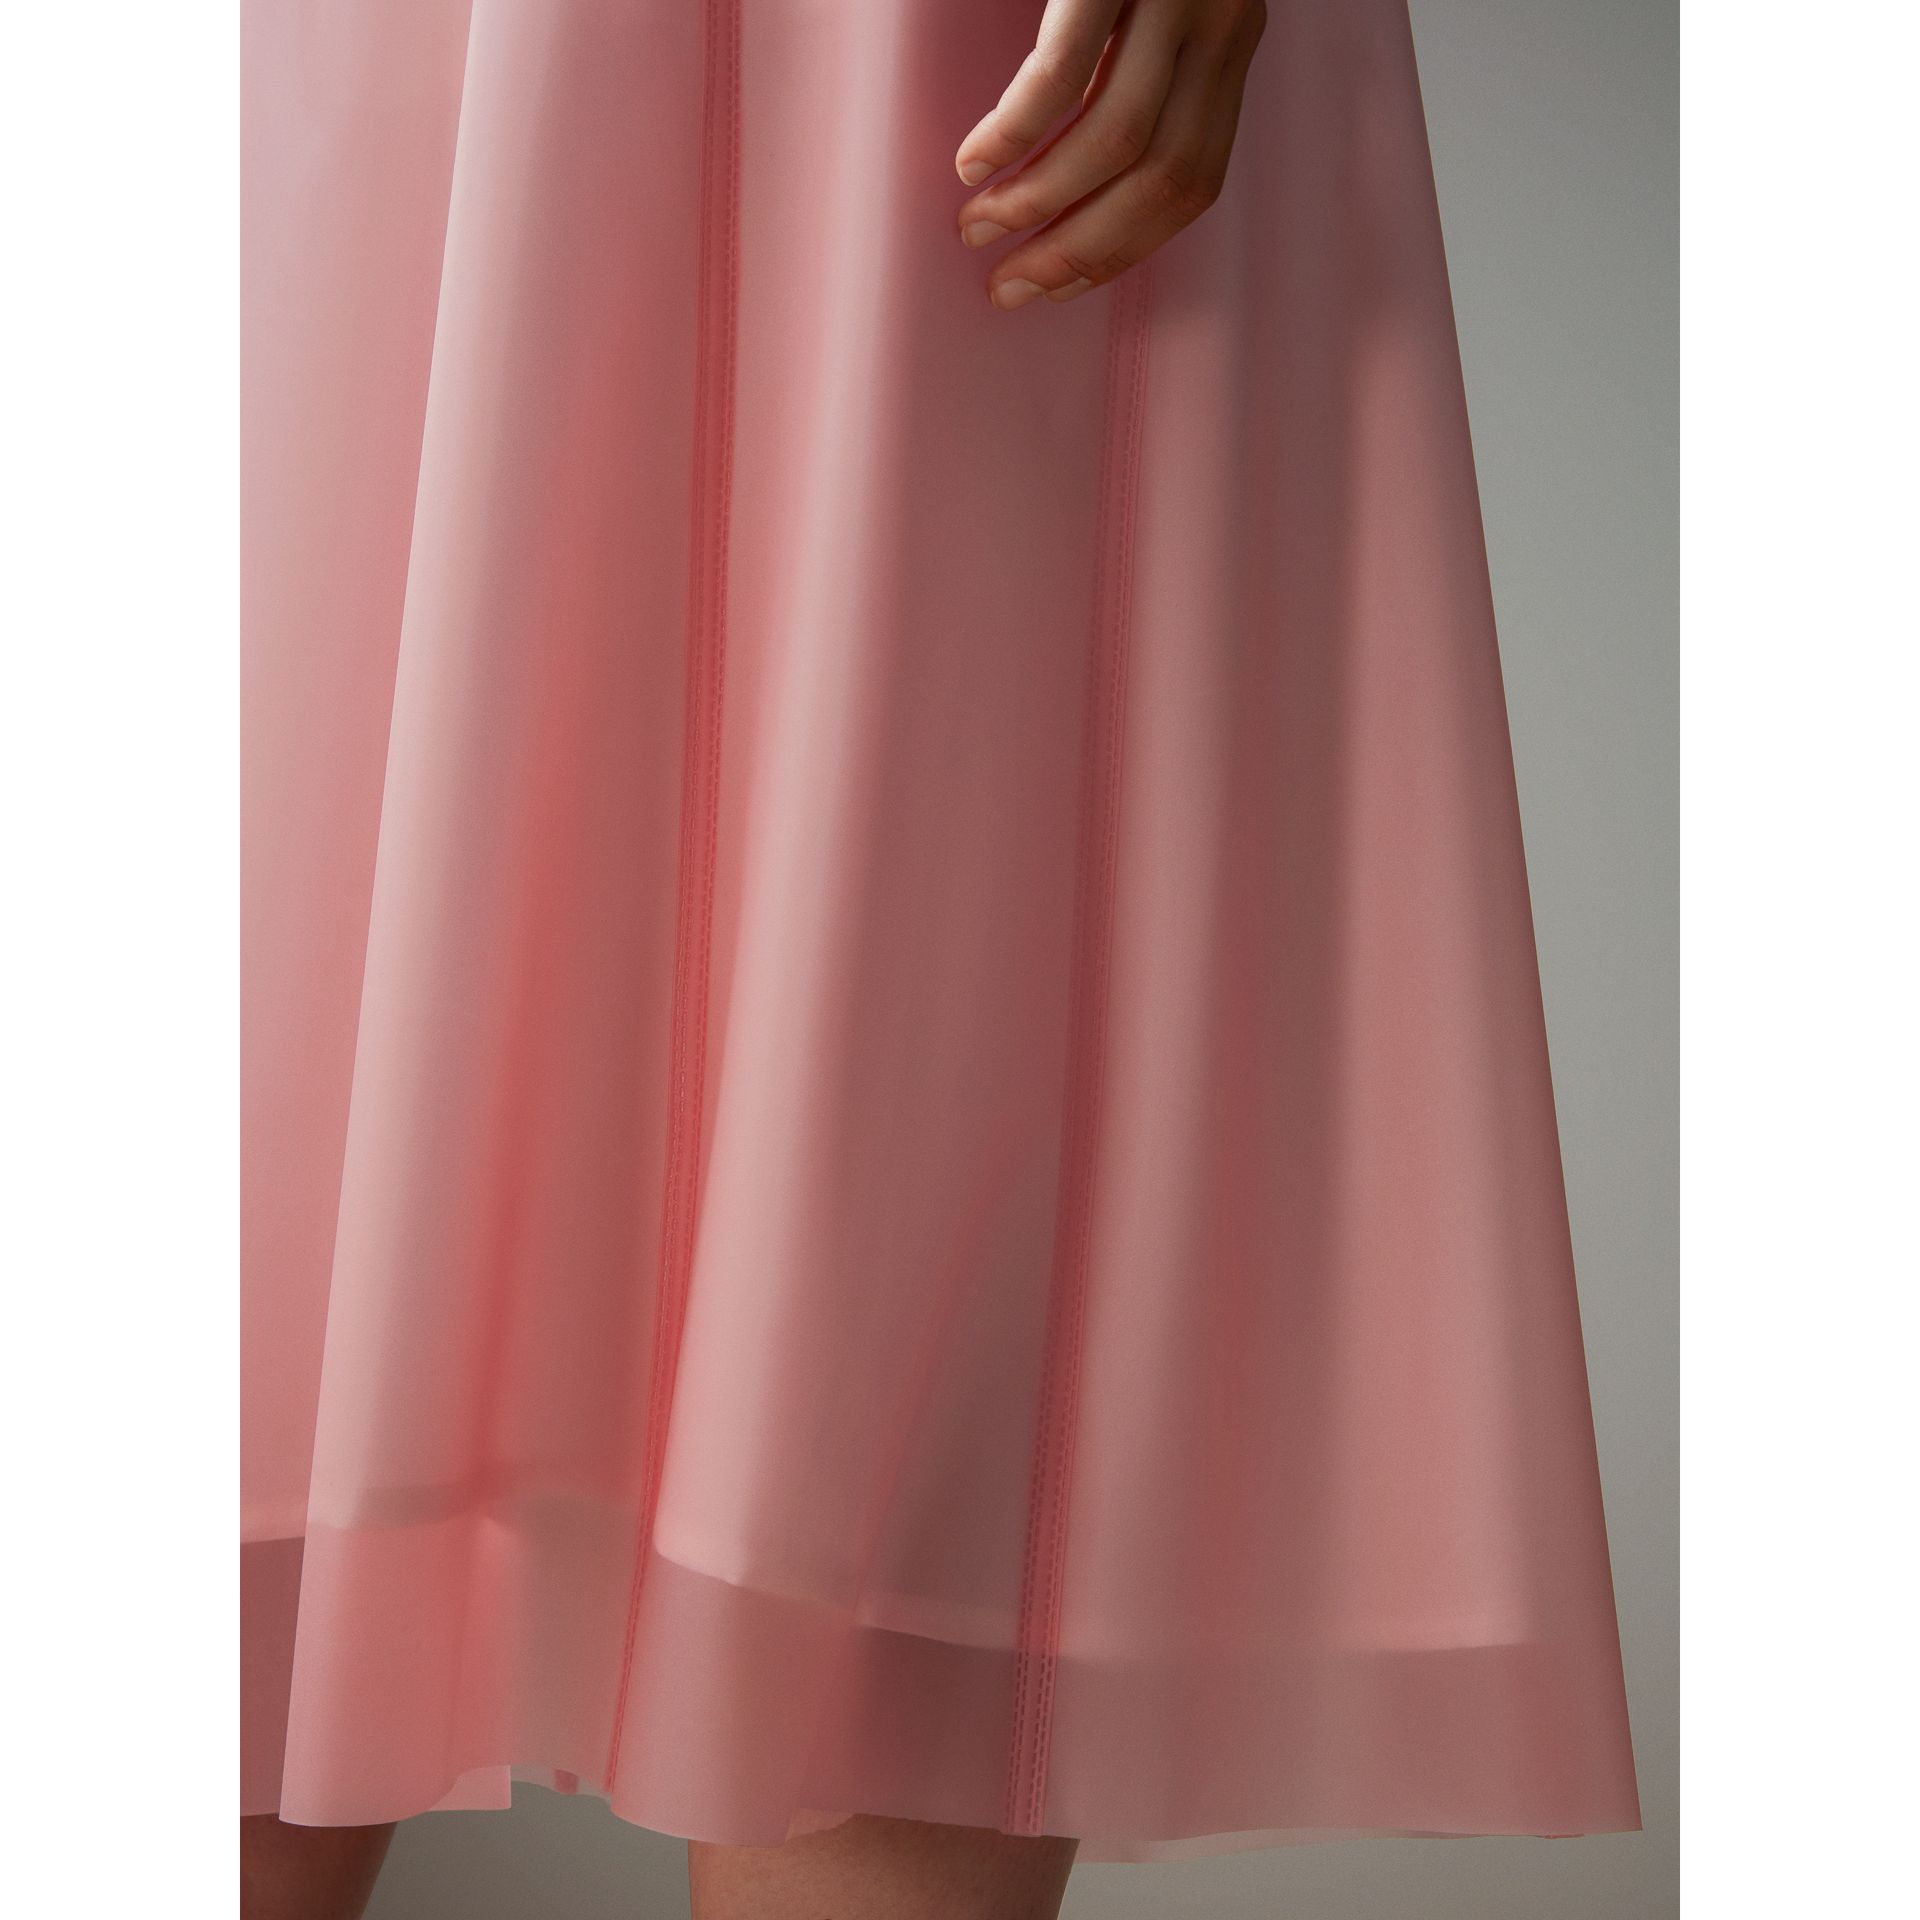 Silk-lined Plastic A-line Skirt in Rose Pink - Women | Burberry Singapore - gallery image 5